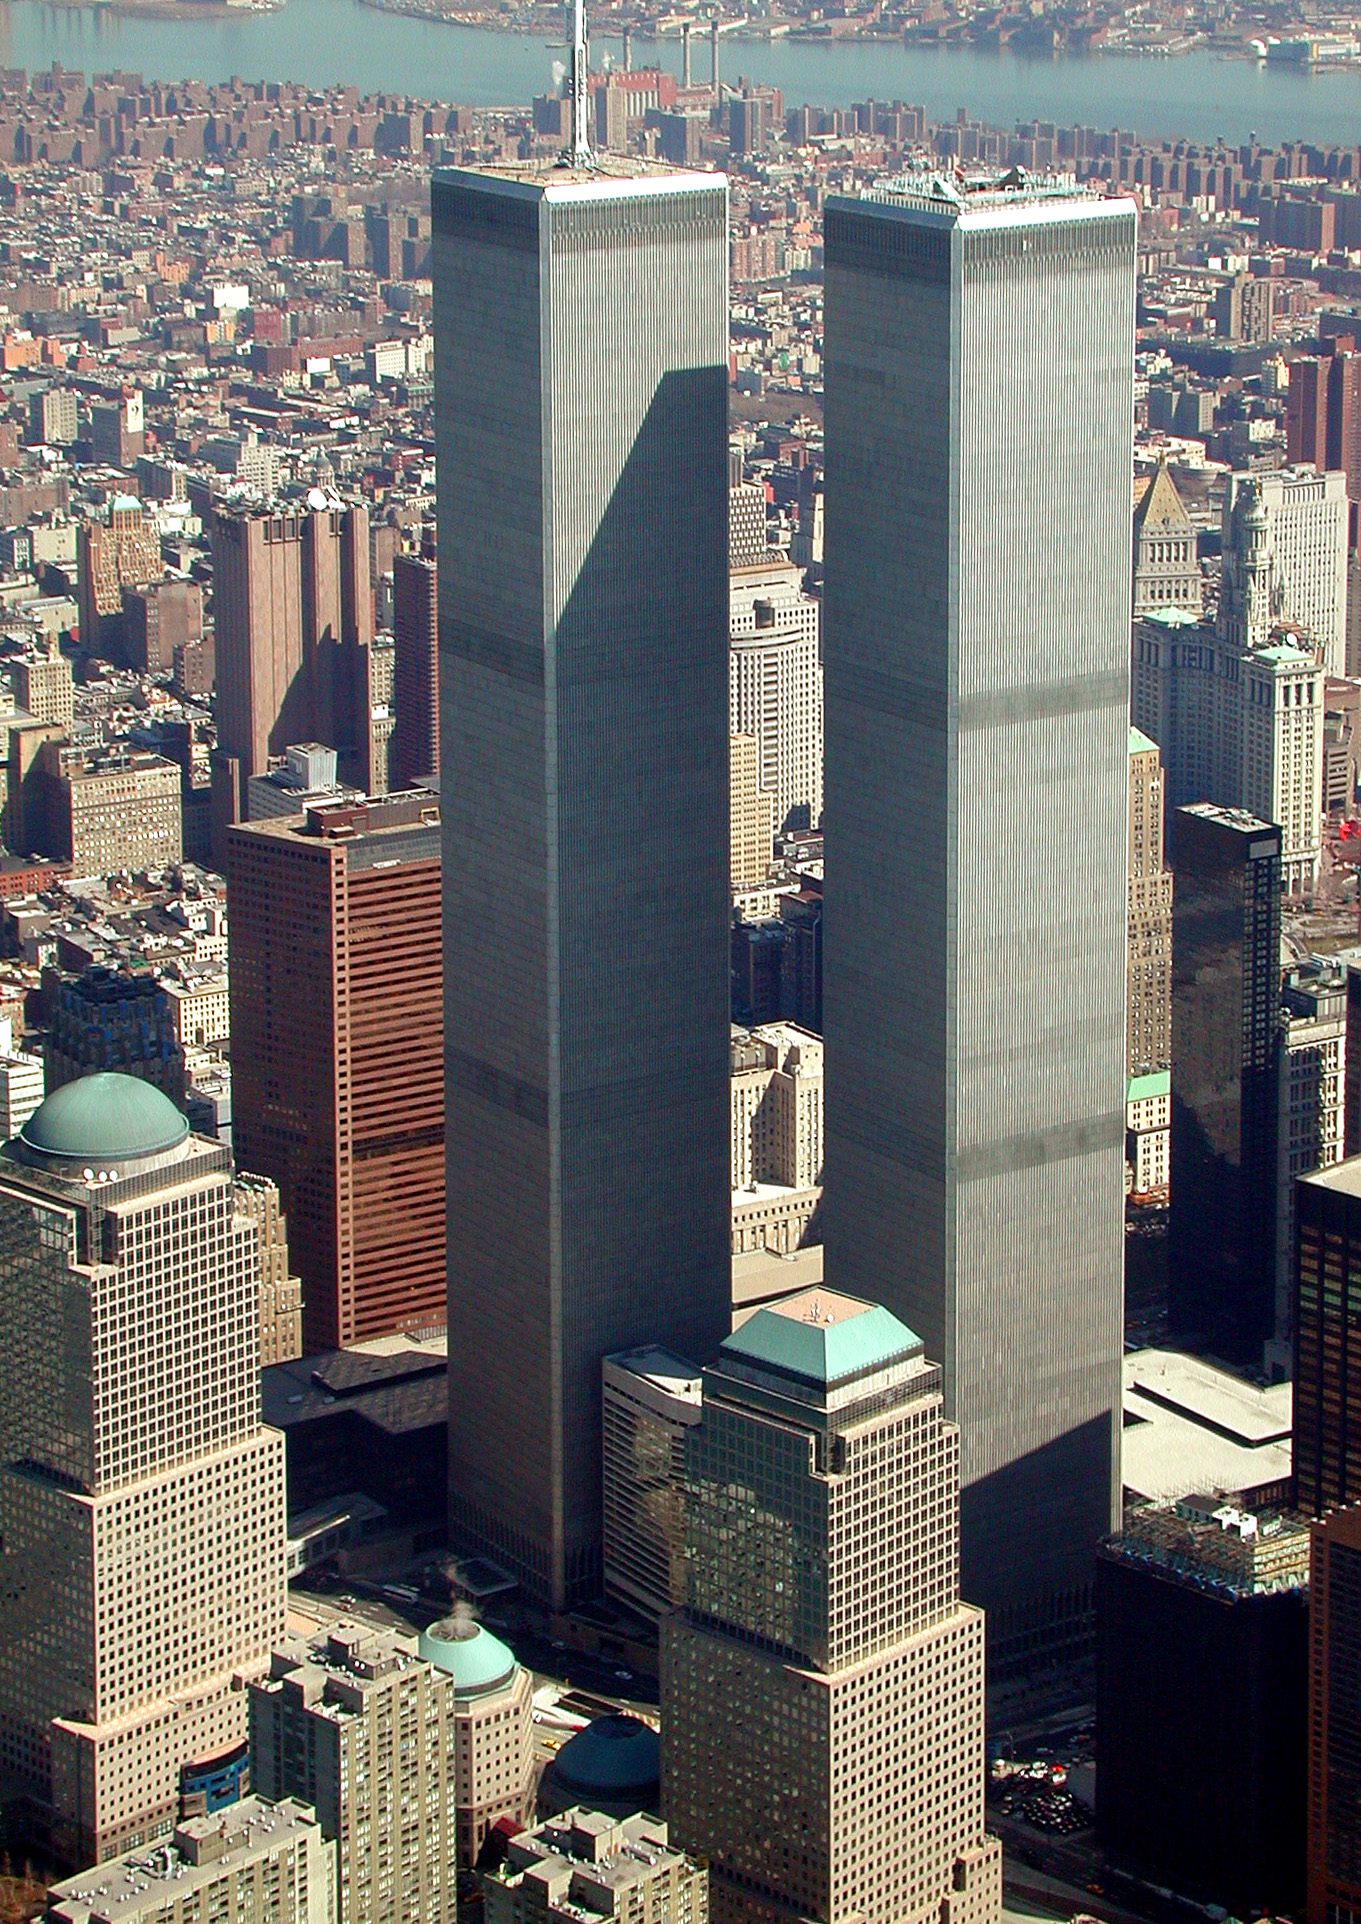 Real Time 911 >> Remembering 9/11 and the World Trade Center Twin Towers | Randolph Mase's Weblog